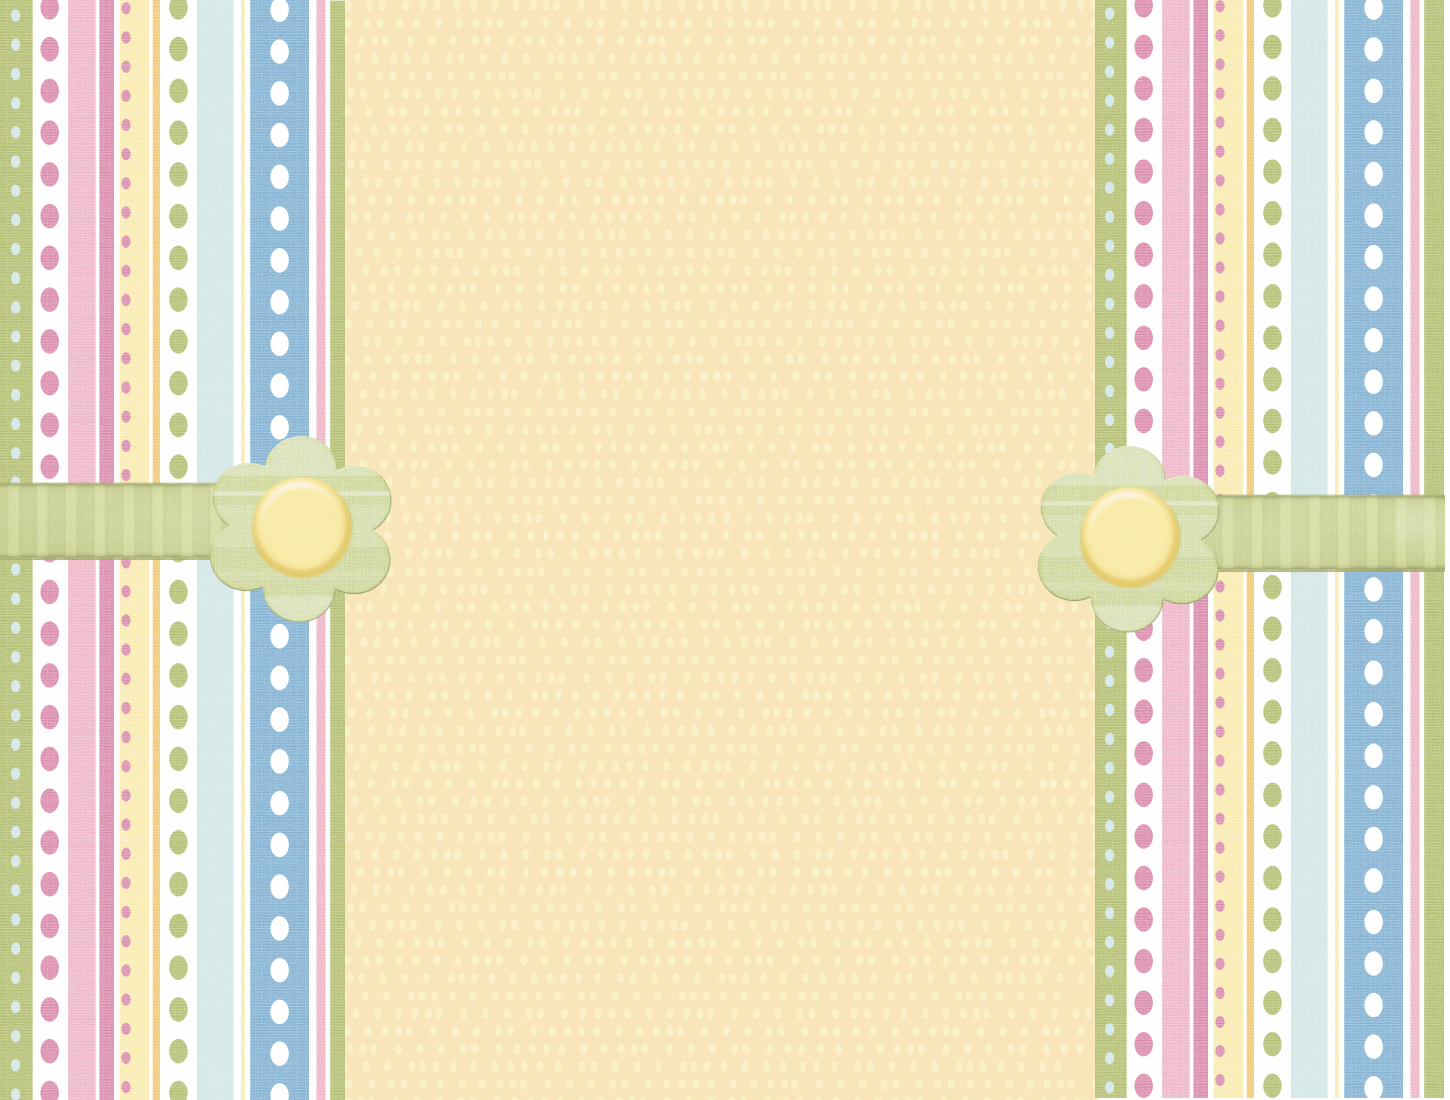 Backgrounds For Baby Pictures